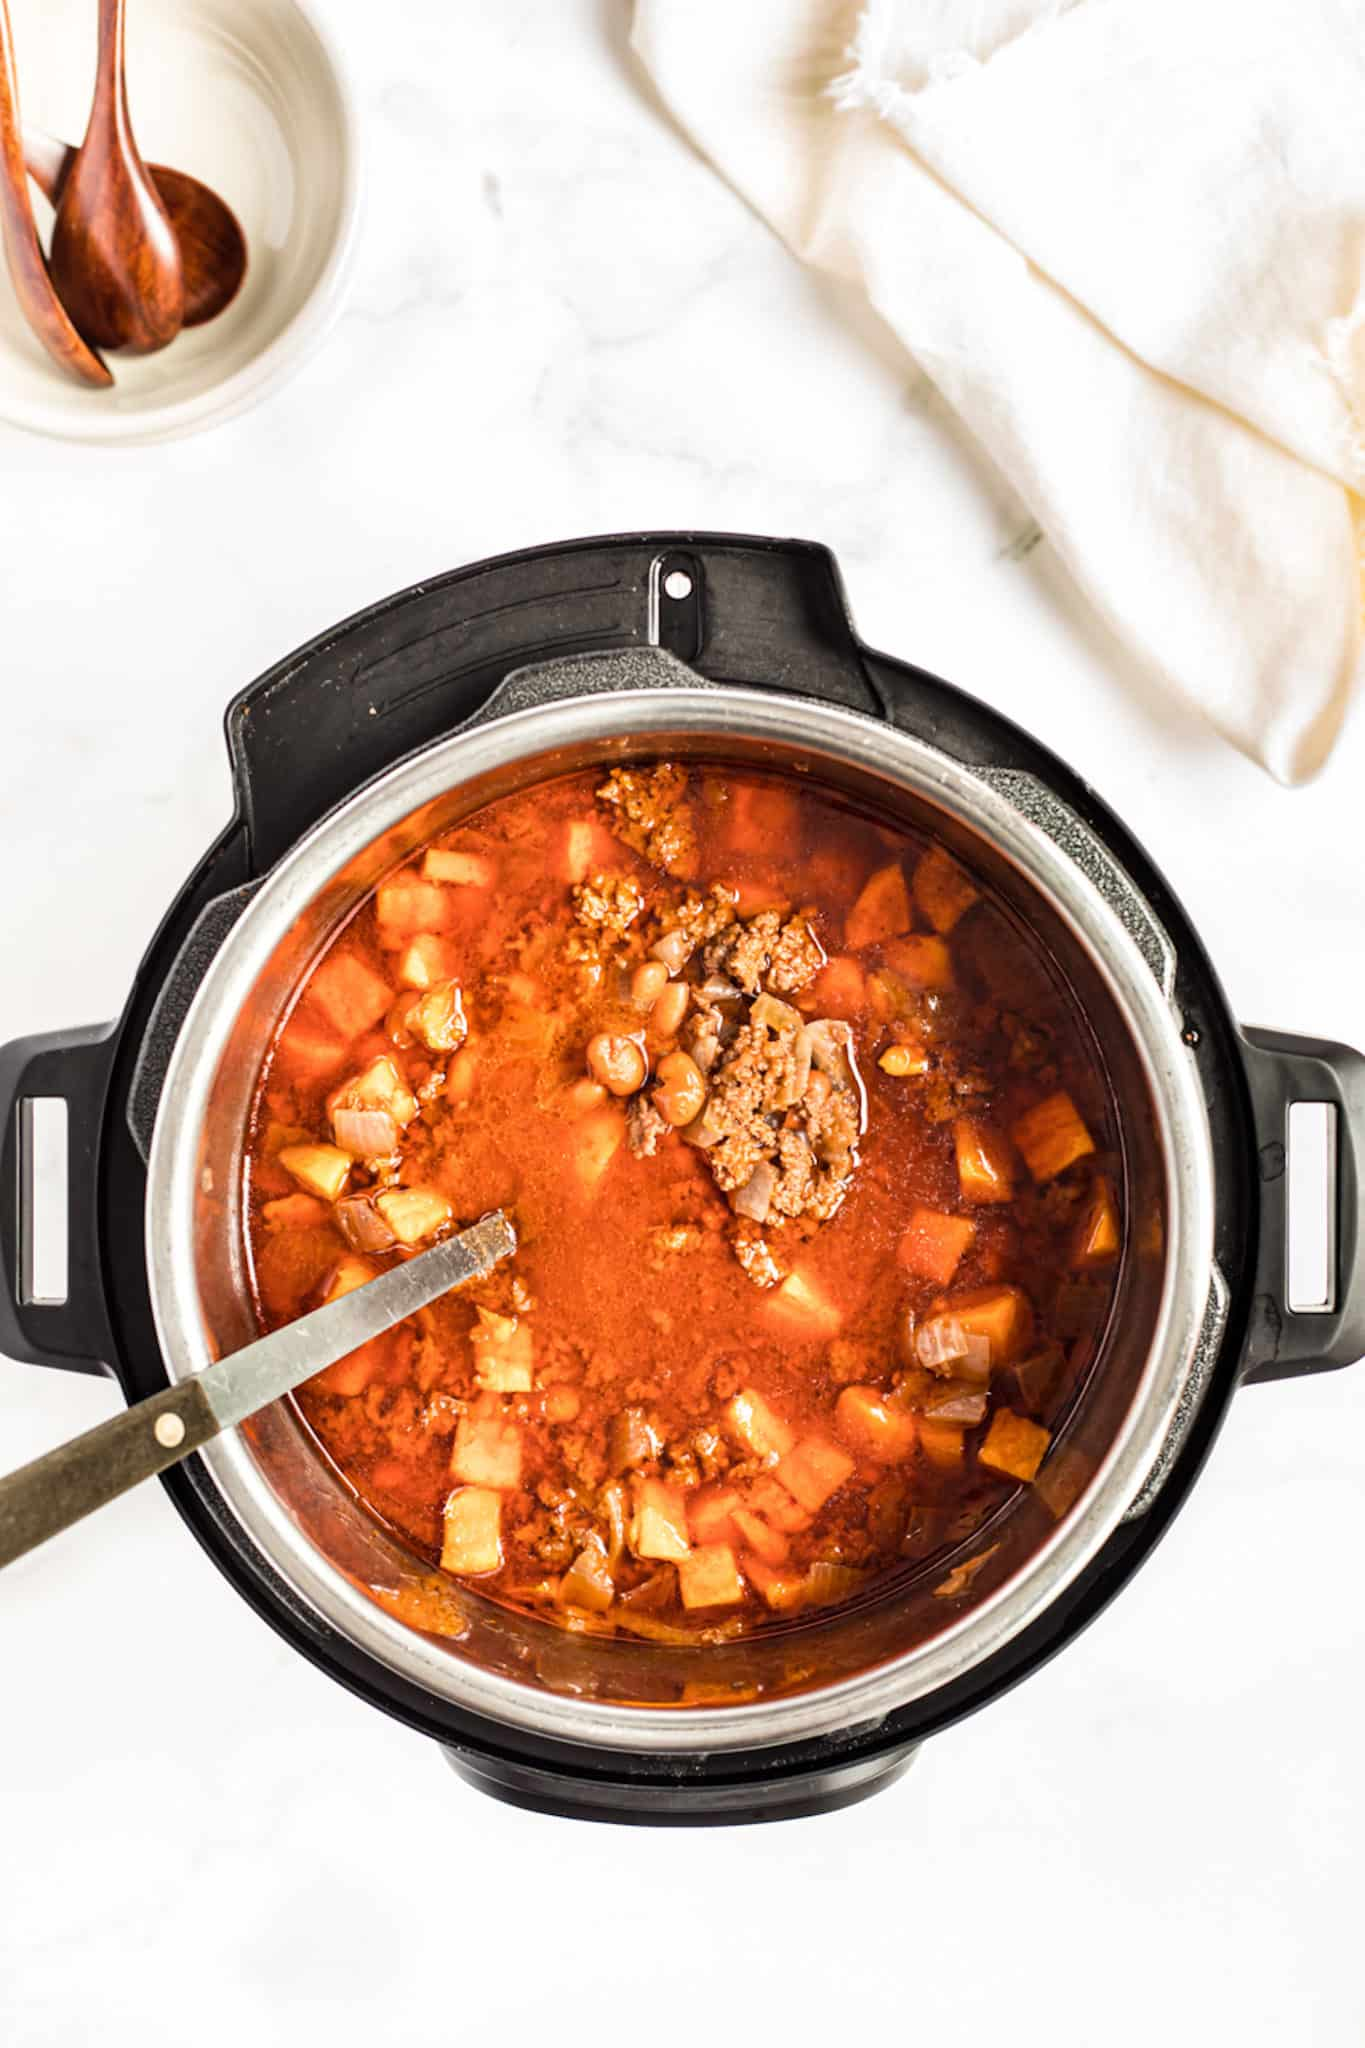 cooked sweet potato chili in an instant pot pressure cooker with a serving spoon